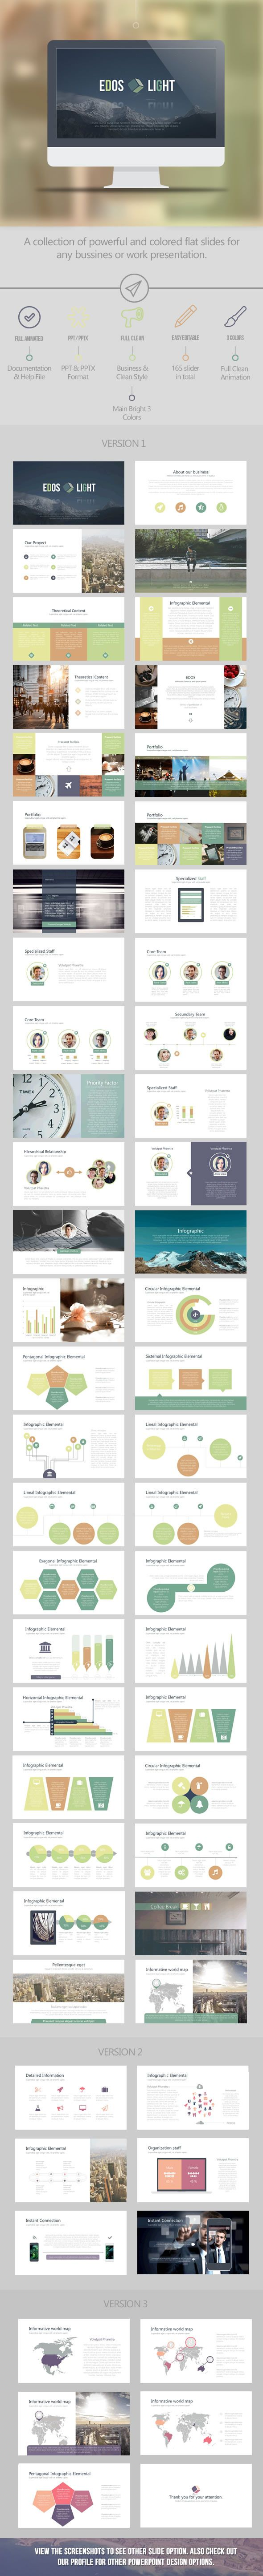 Edos Light Business - Business PowerPoint Templates